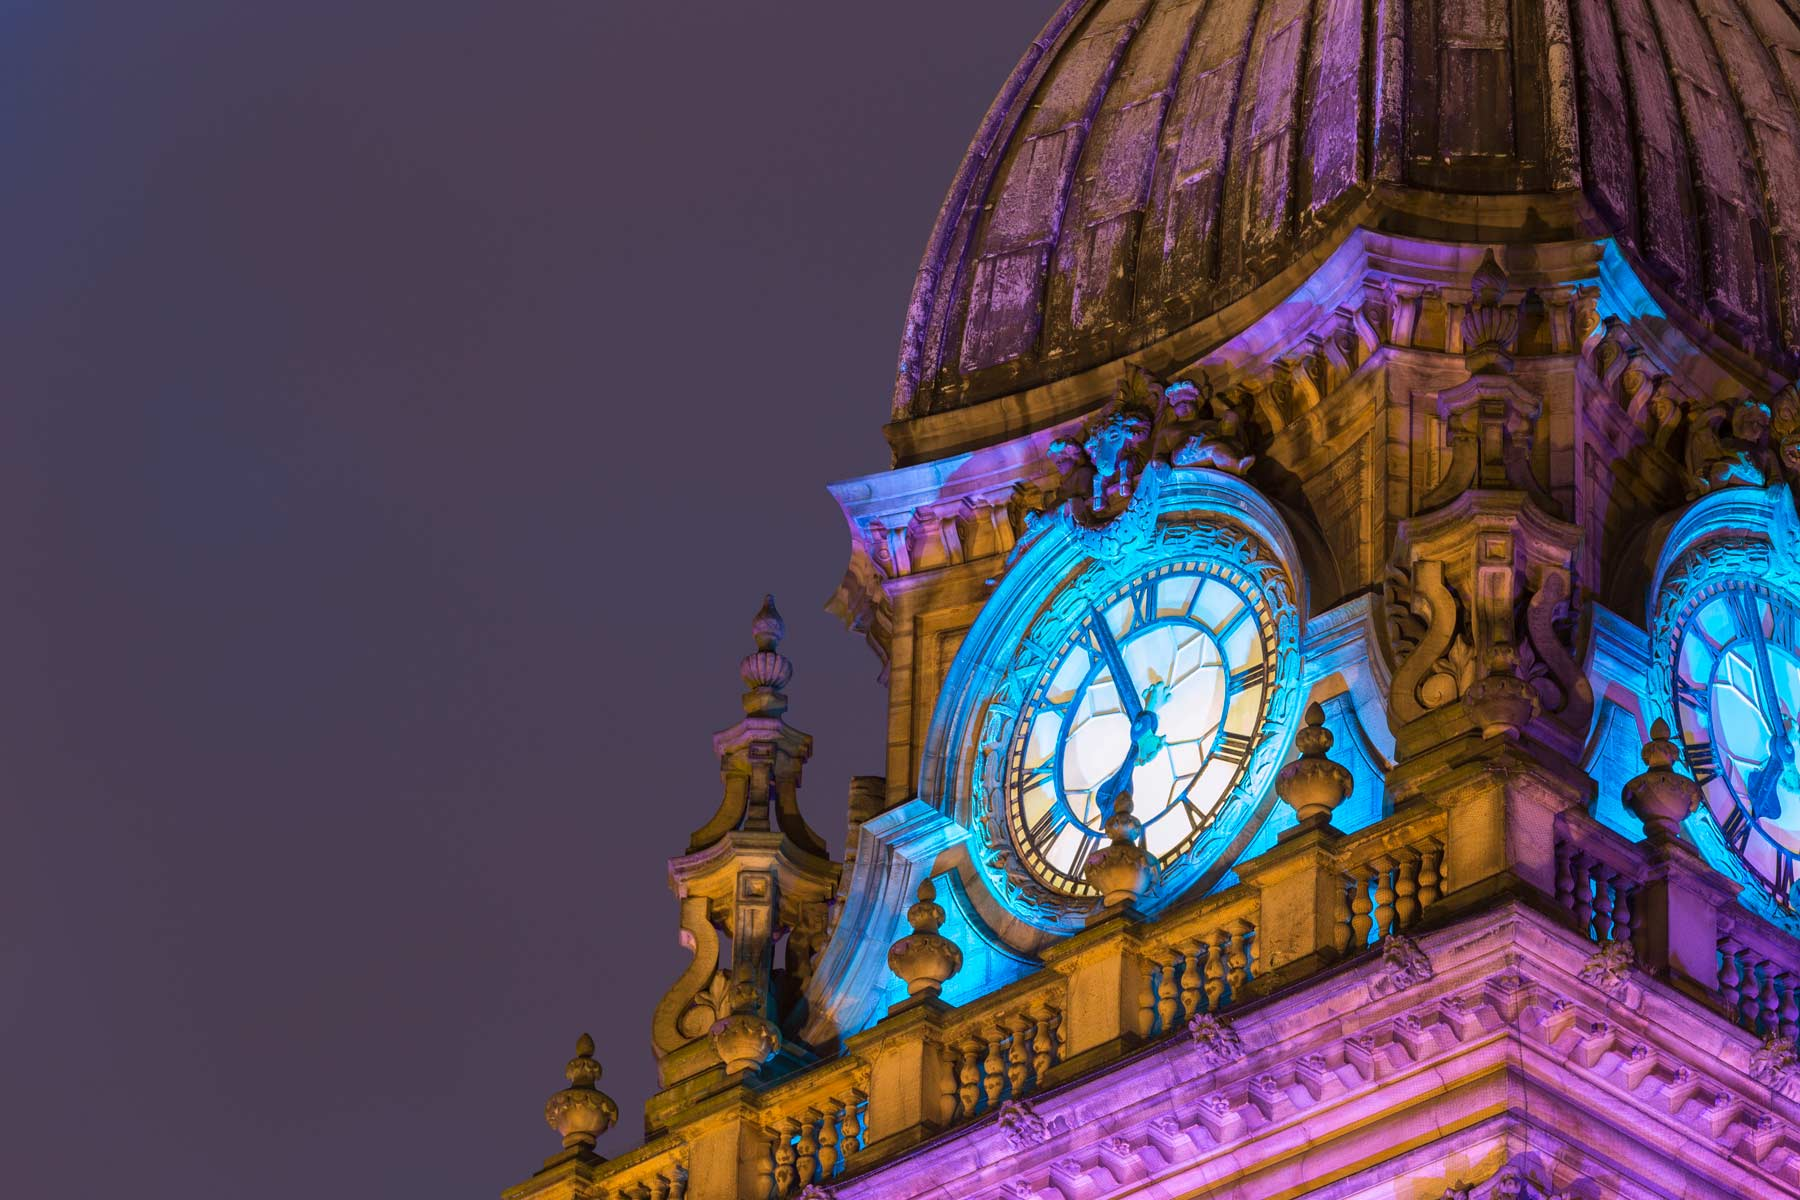 Leeds City Hall Clock